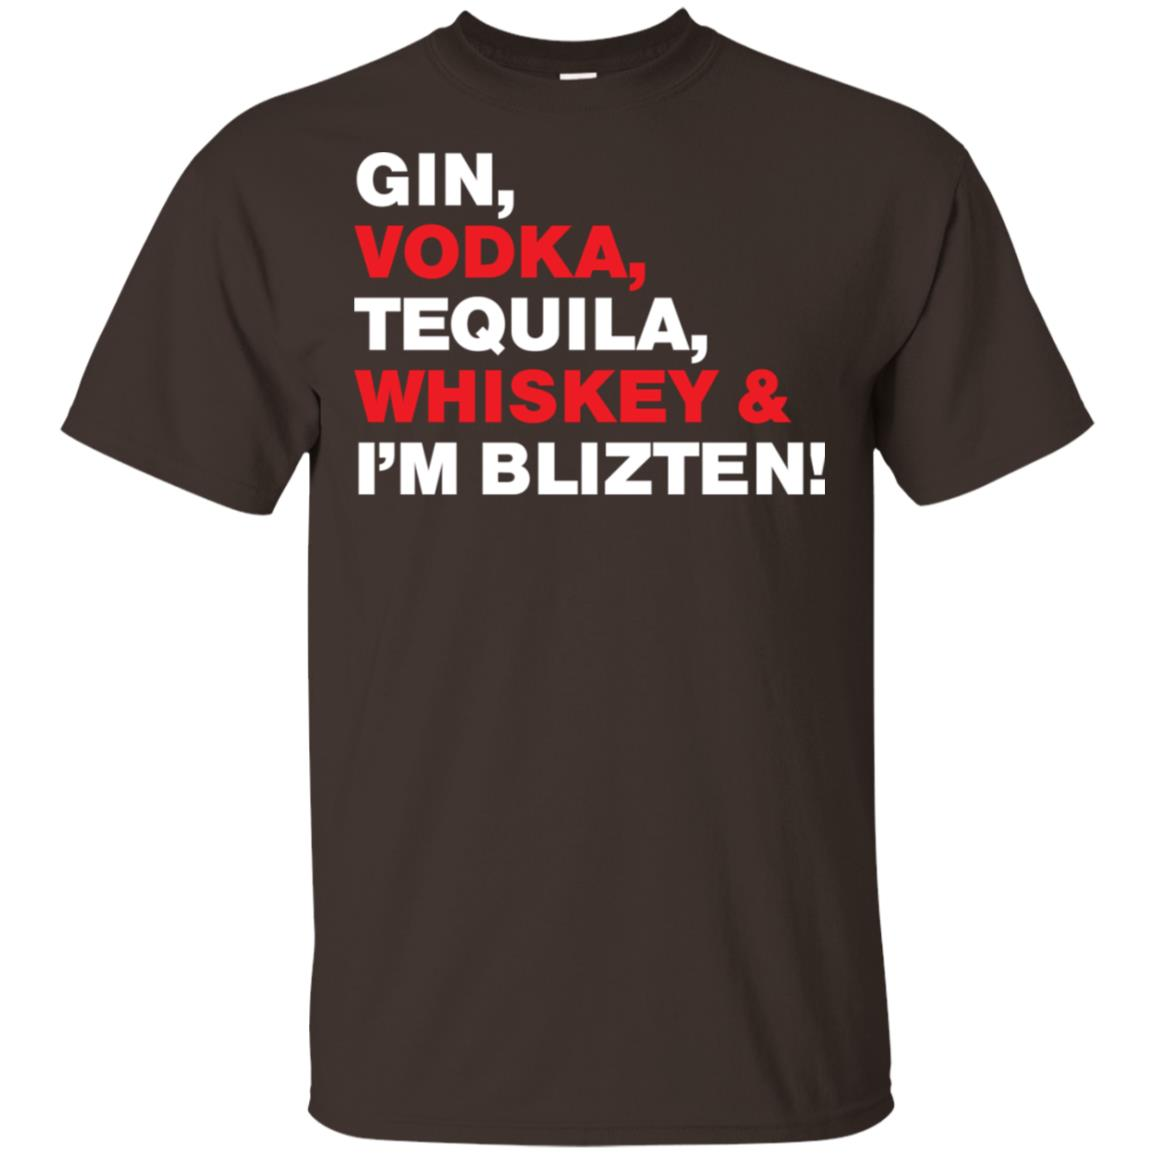 Gin, Vodka, Tequila Whiskey & I'm Blitzen-1 Unisex Short Sleeve